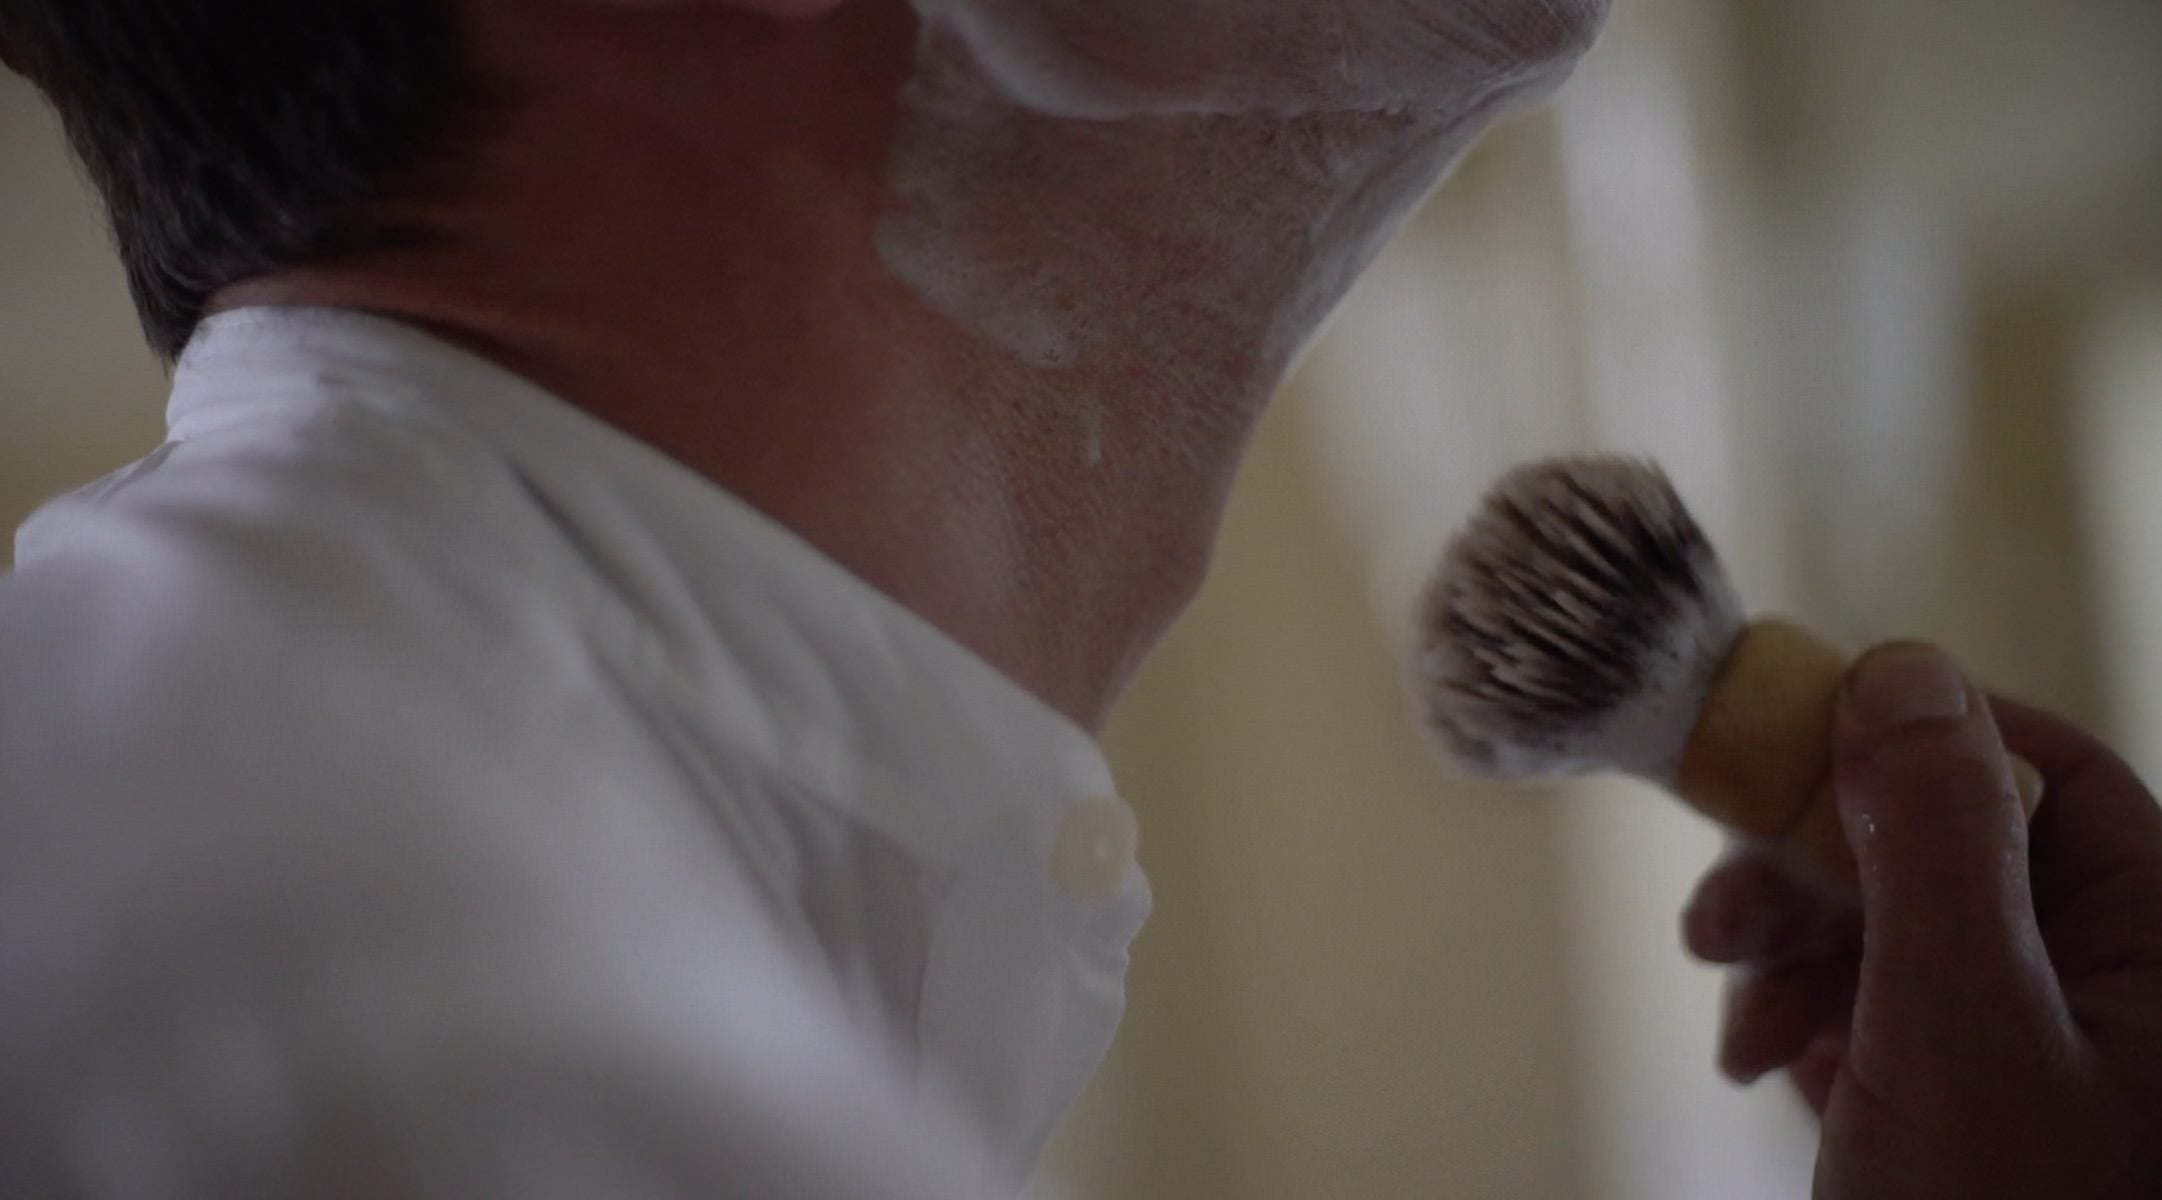 The perfect shave demonstrated by Enzo Cilenti. Moisten the bristles of the brush and gently work the shave soap into a lather.